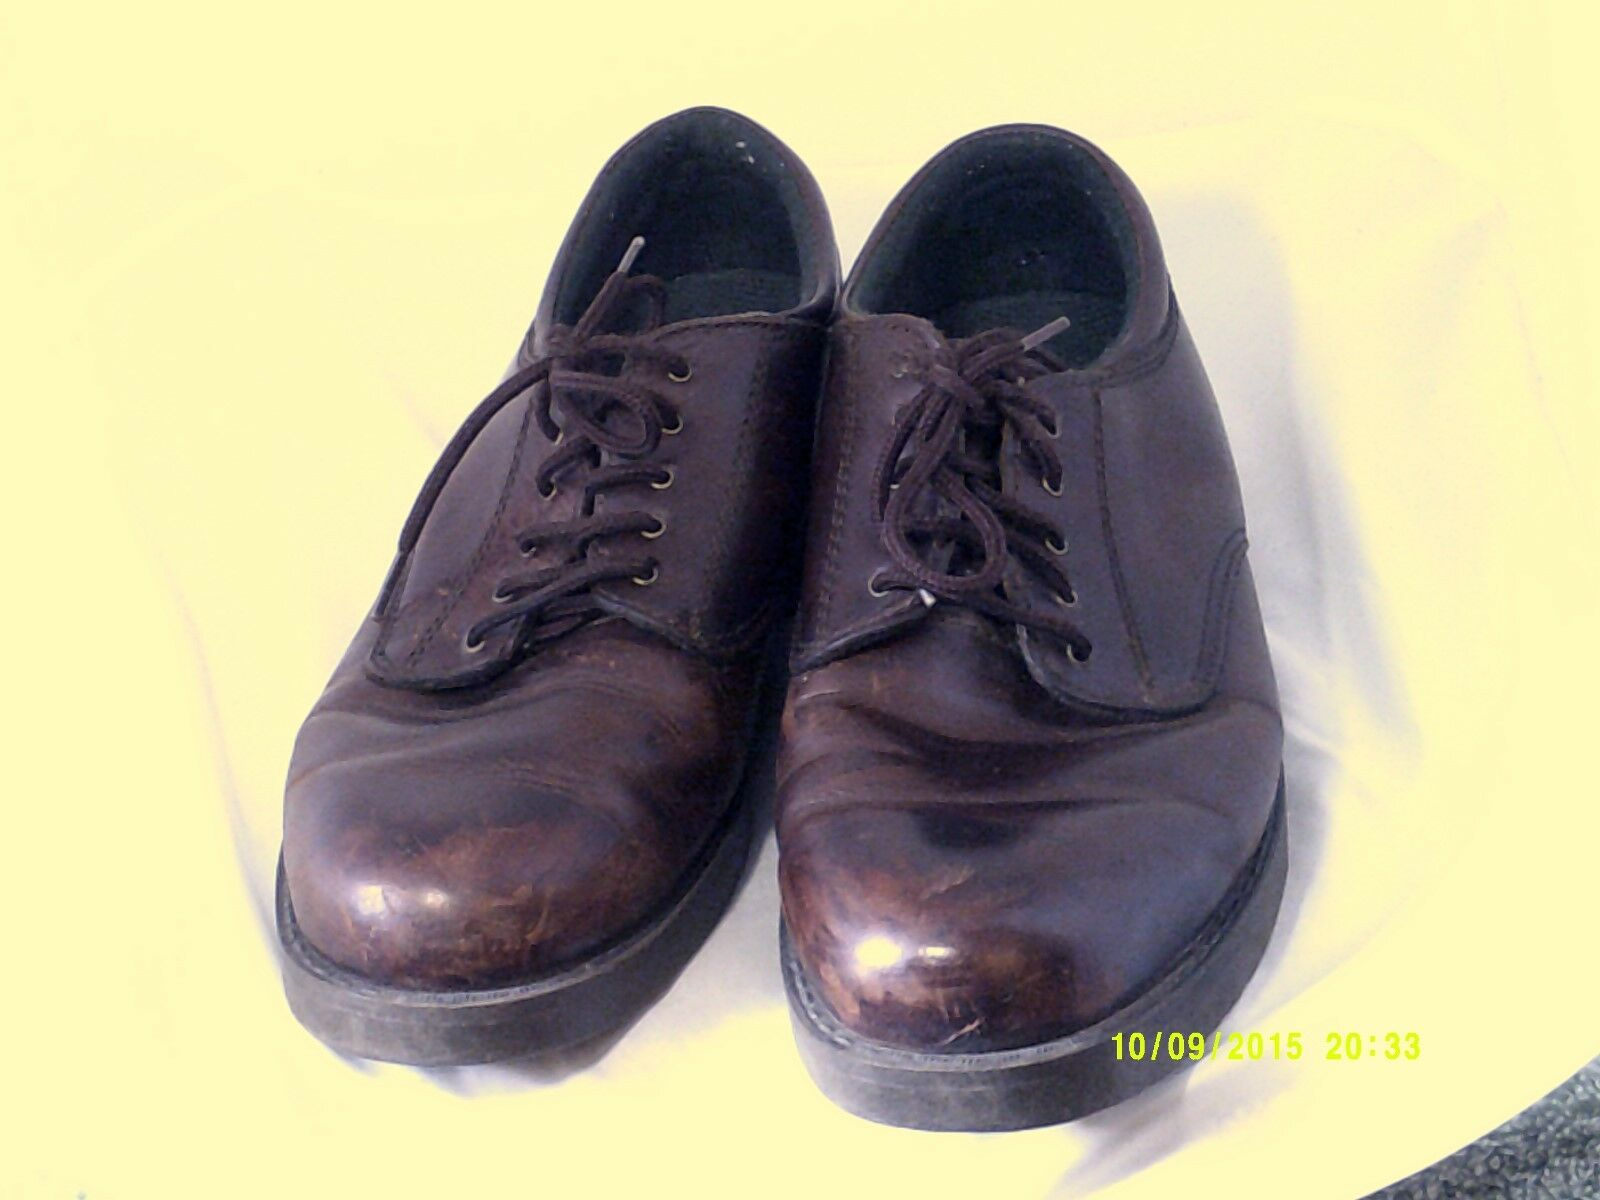 DEERSTAGS Men's Brown BRENTWOOD Leather Upper sz 7.5 Oxford lace up shoes.